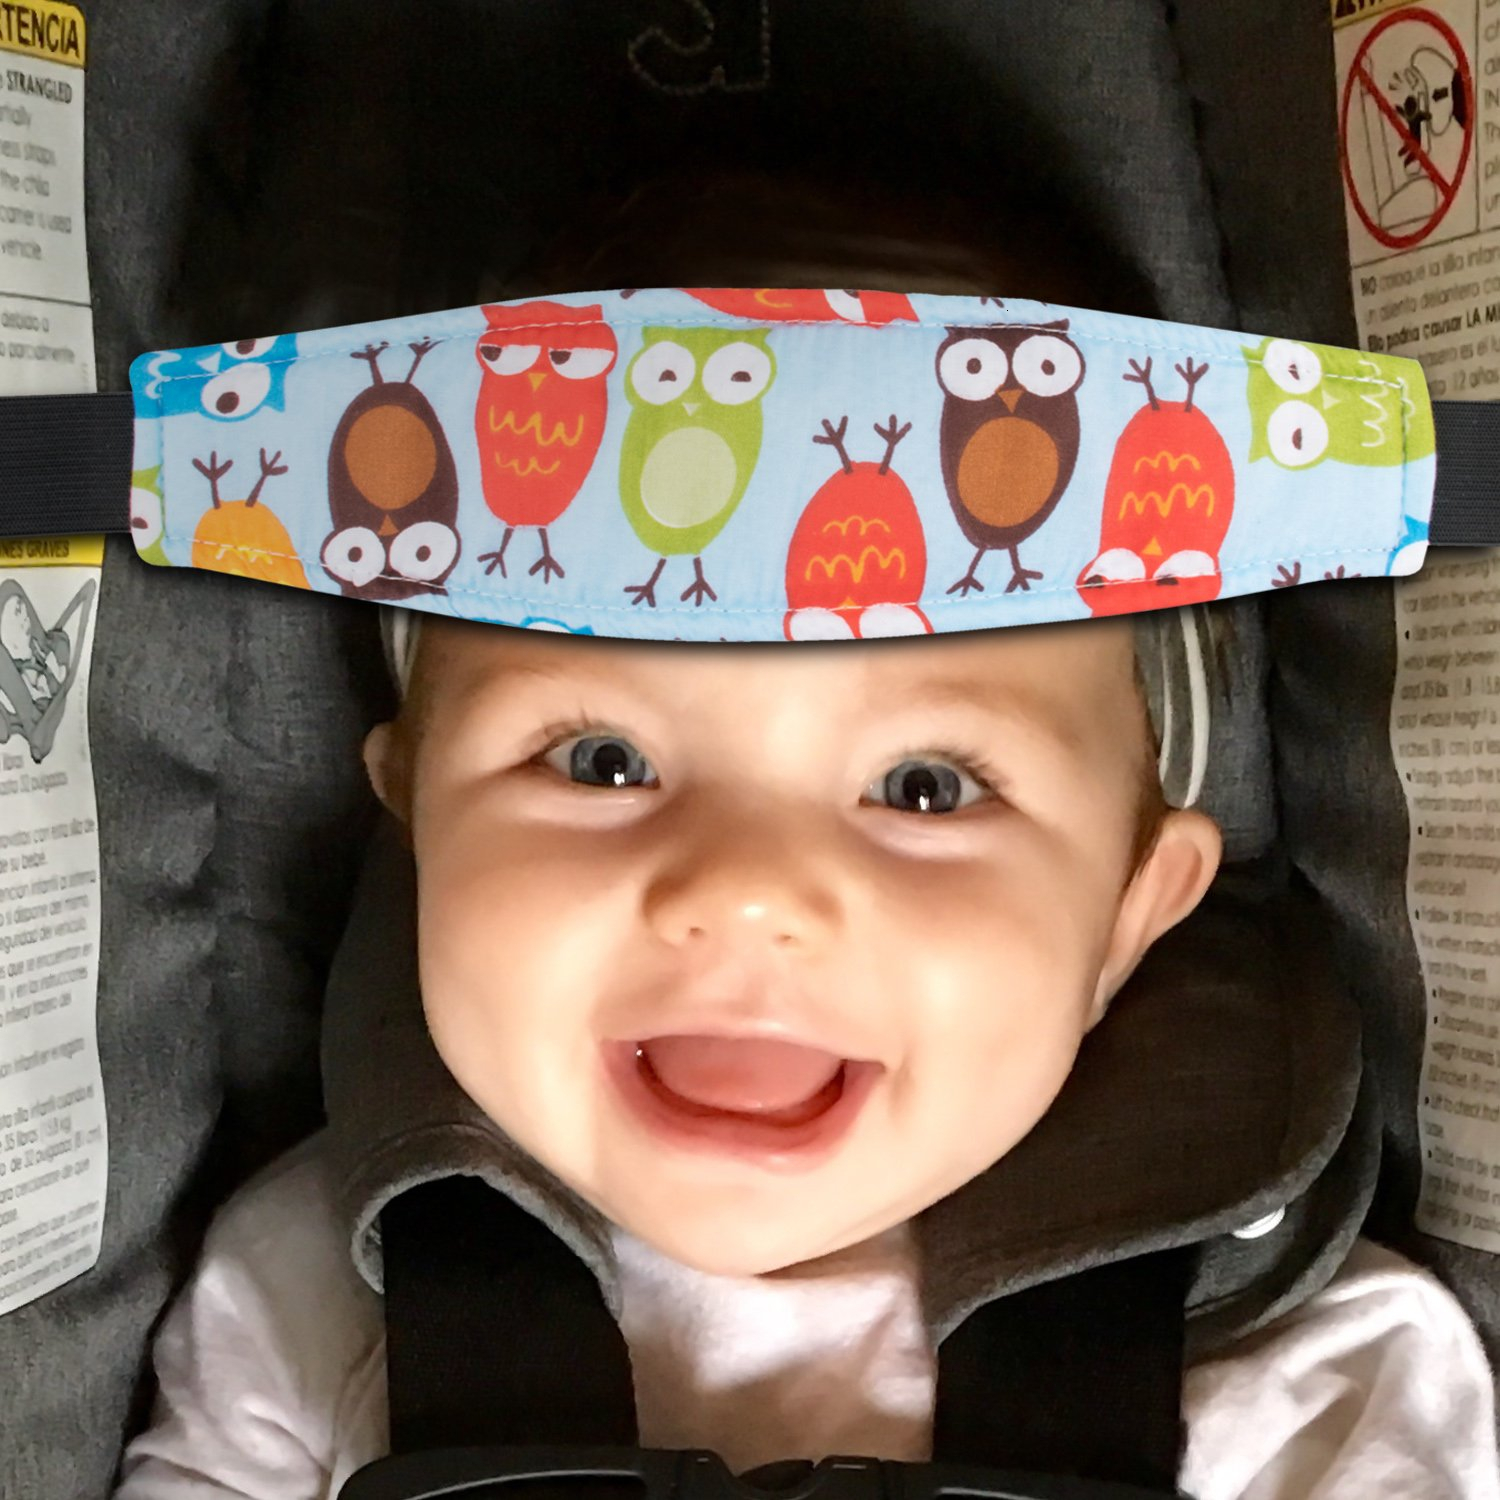 1pc Kids Baby Head Support Holder Adjustable Sleep Belt For Baby Cars Seat Nap Aid Band Print Baby Car Seat Accessories